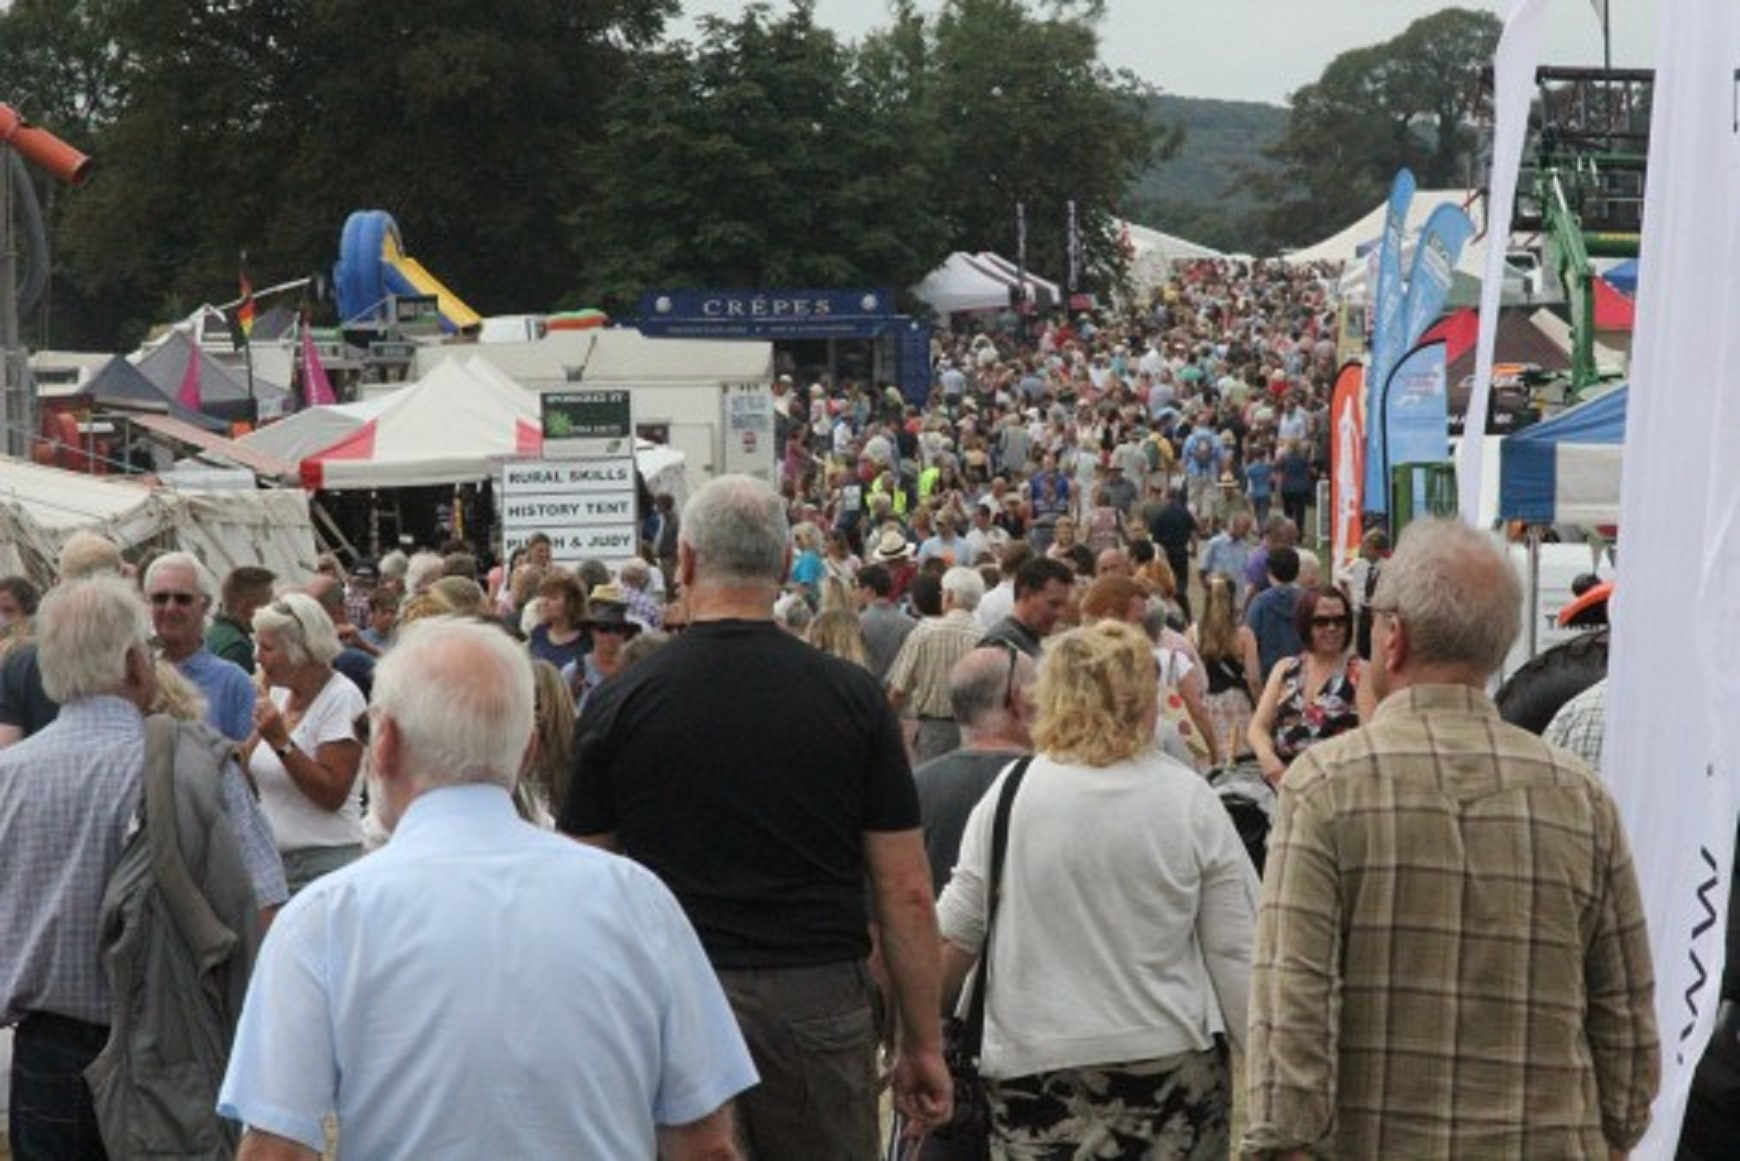 Crowds at Yealmpton Show in 2015 (52528638)